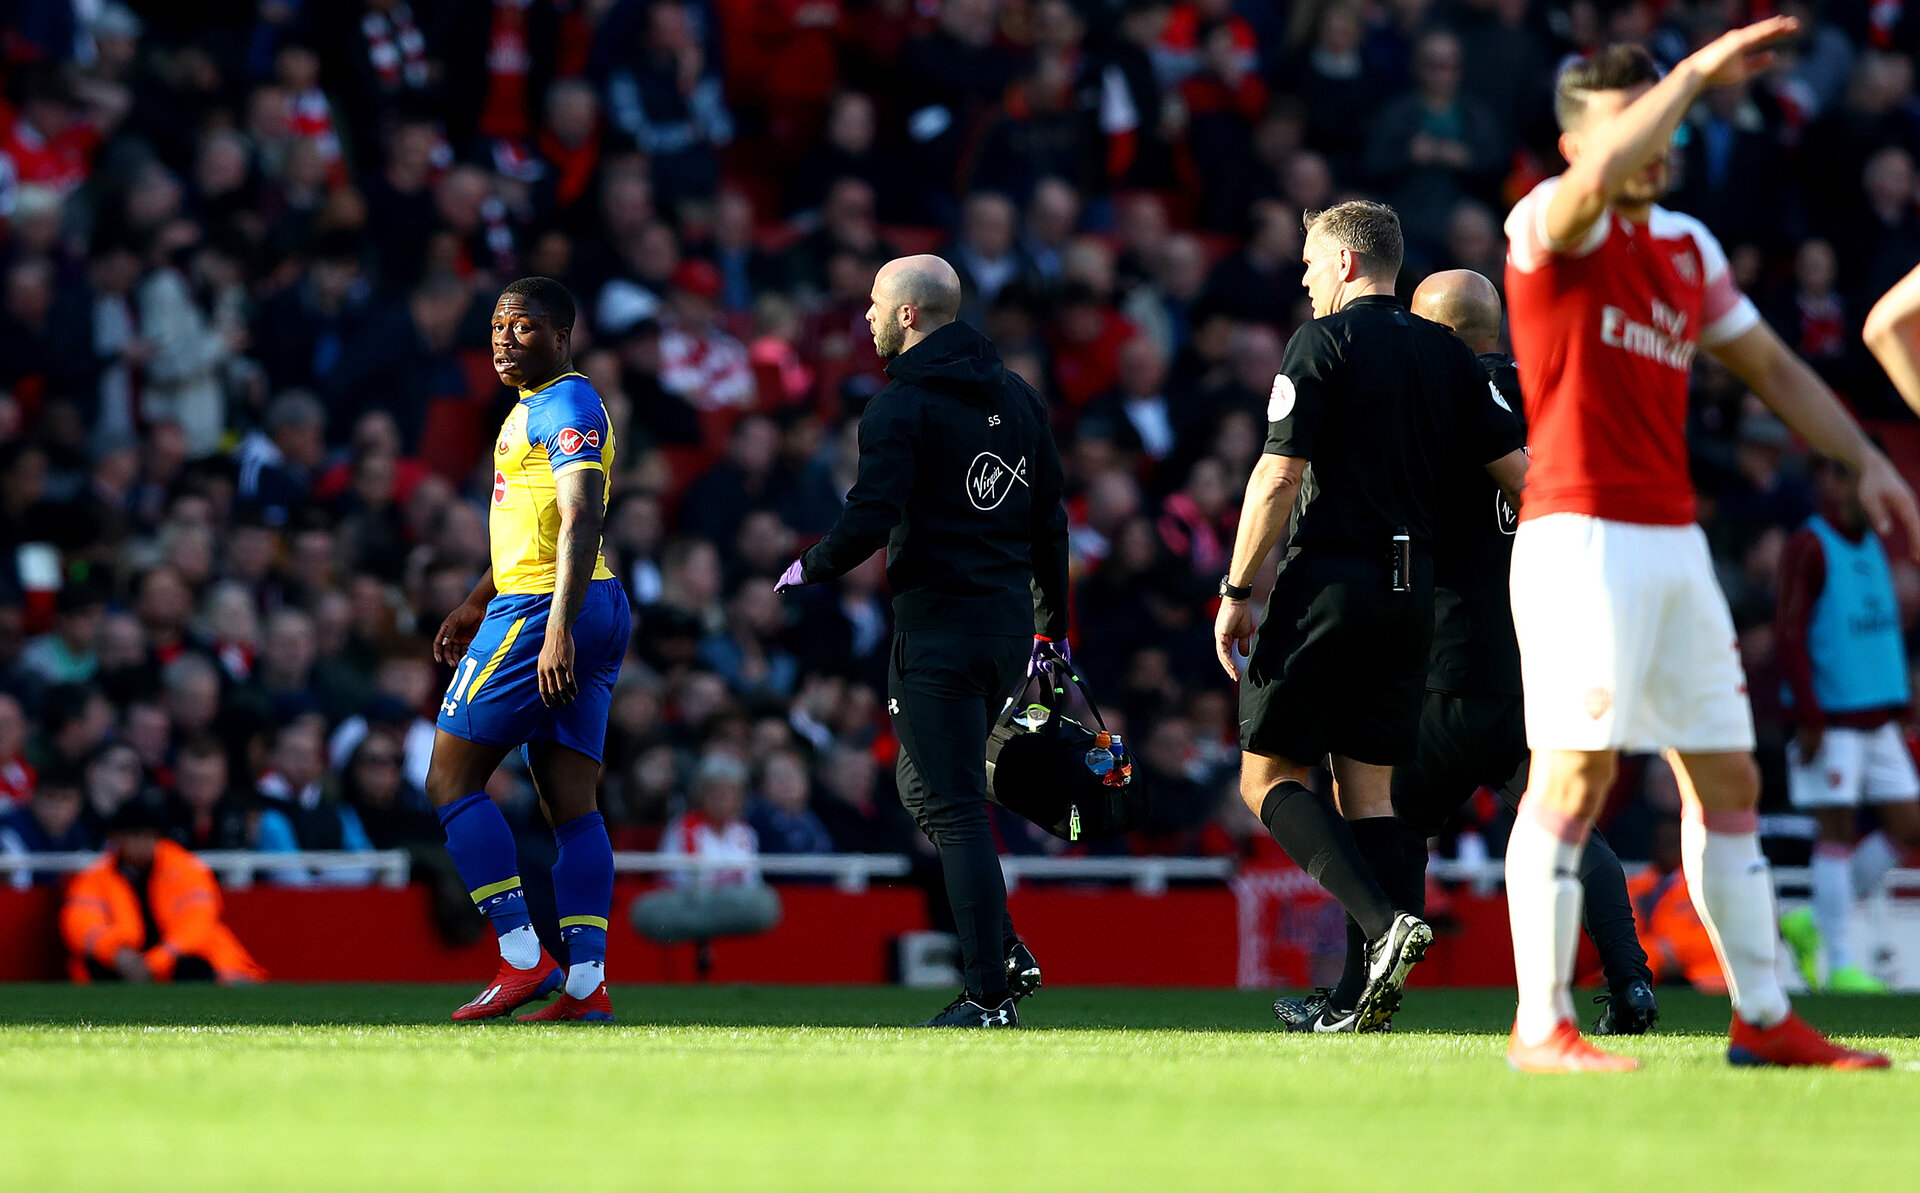 LONDON, ENGLAND - FEBRUARY 24: during the Premier League match between Arsenal FC and Southampton FC at Emirates Stadium on February 24, 2019 in London, United Kingdom. (Photo by Matt Watson/Southampton FC via Getty Images)